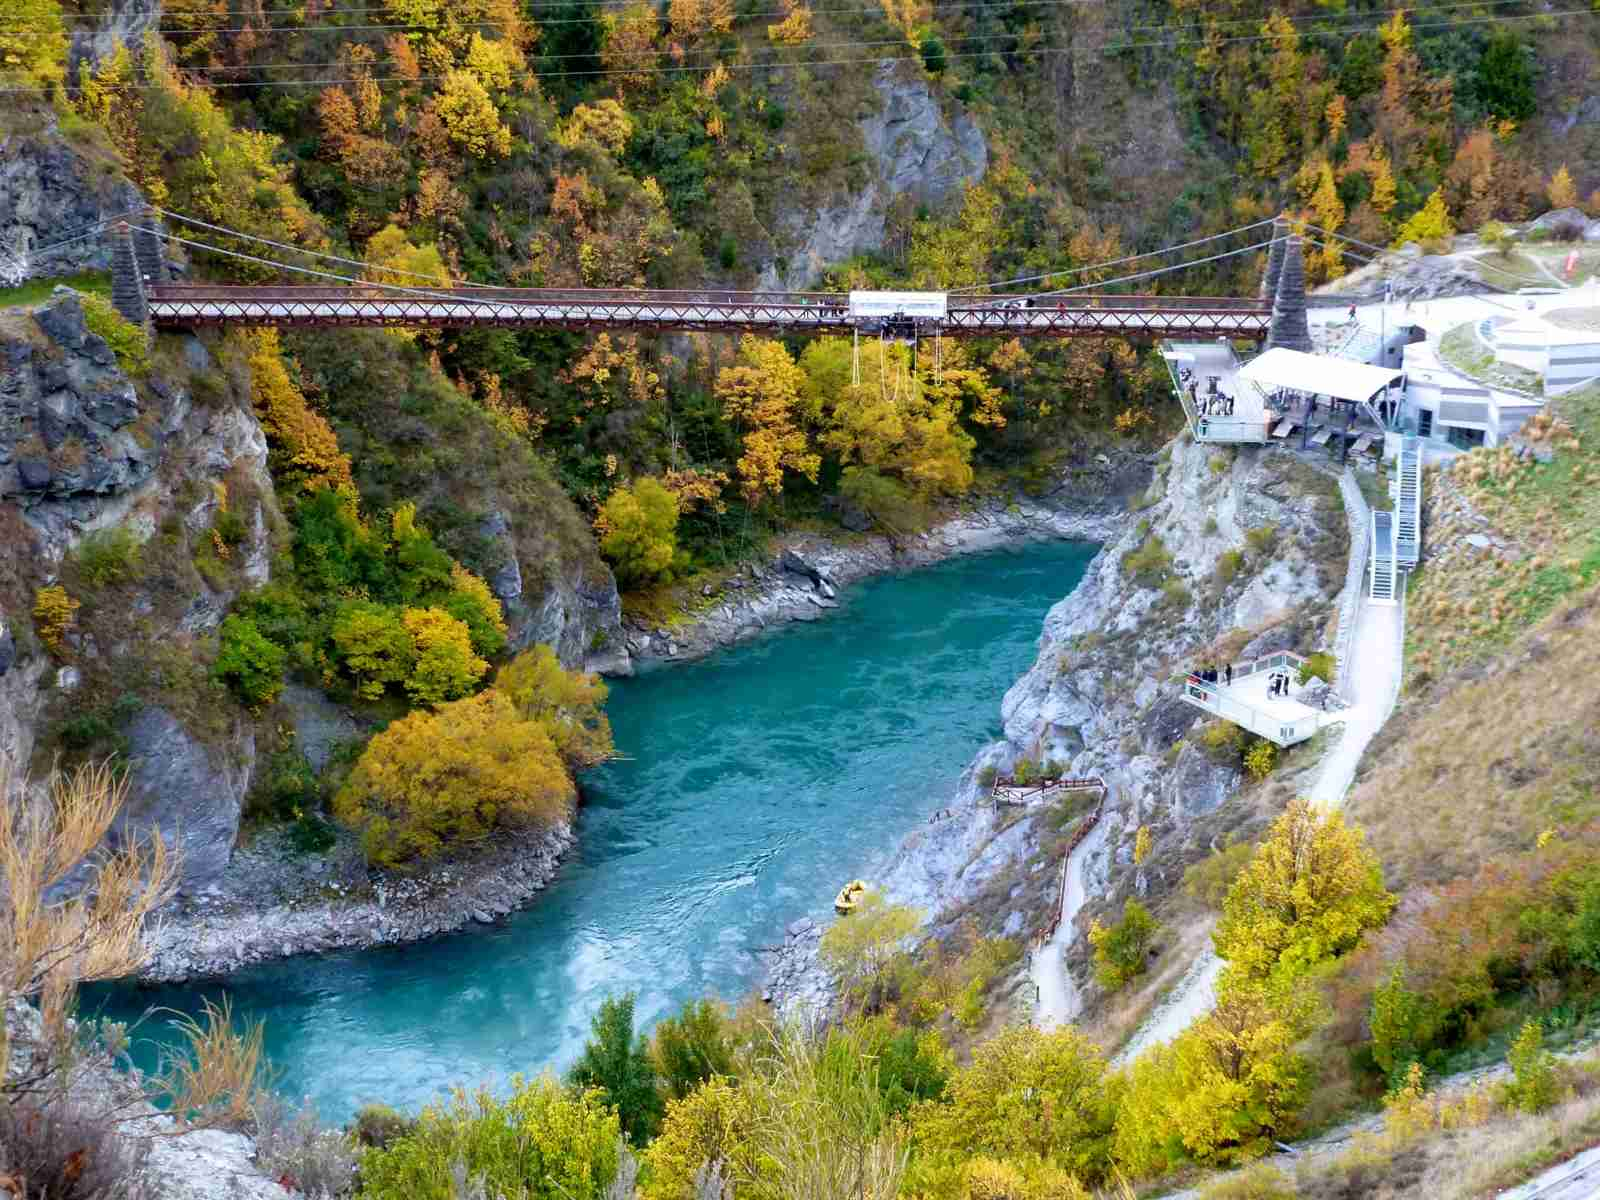 Kawarau Bungy Centre in New Zealand. (Photo by Felicia Ng/Getty Images)